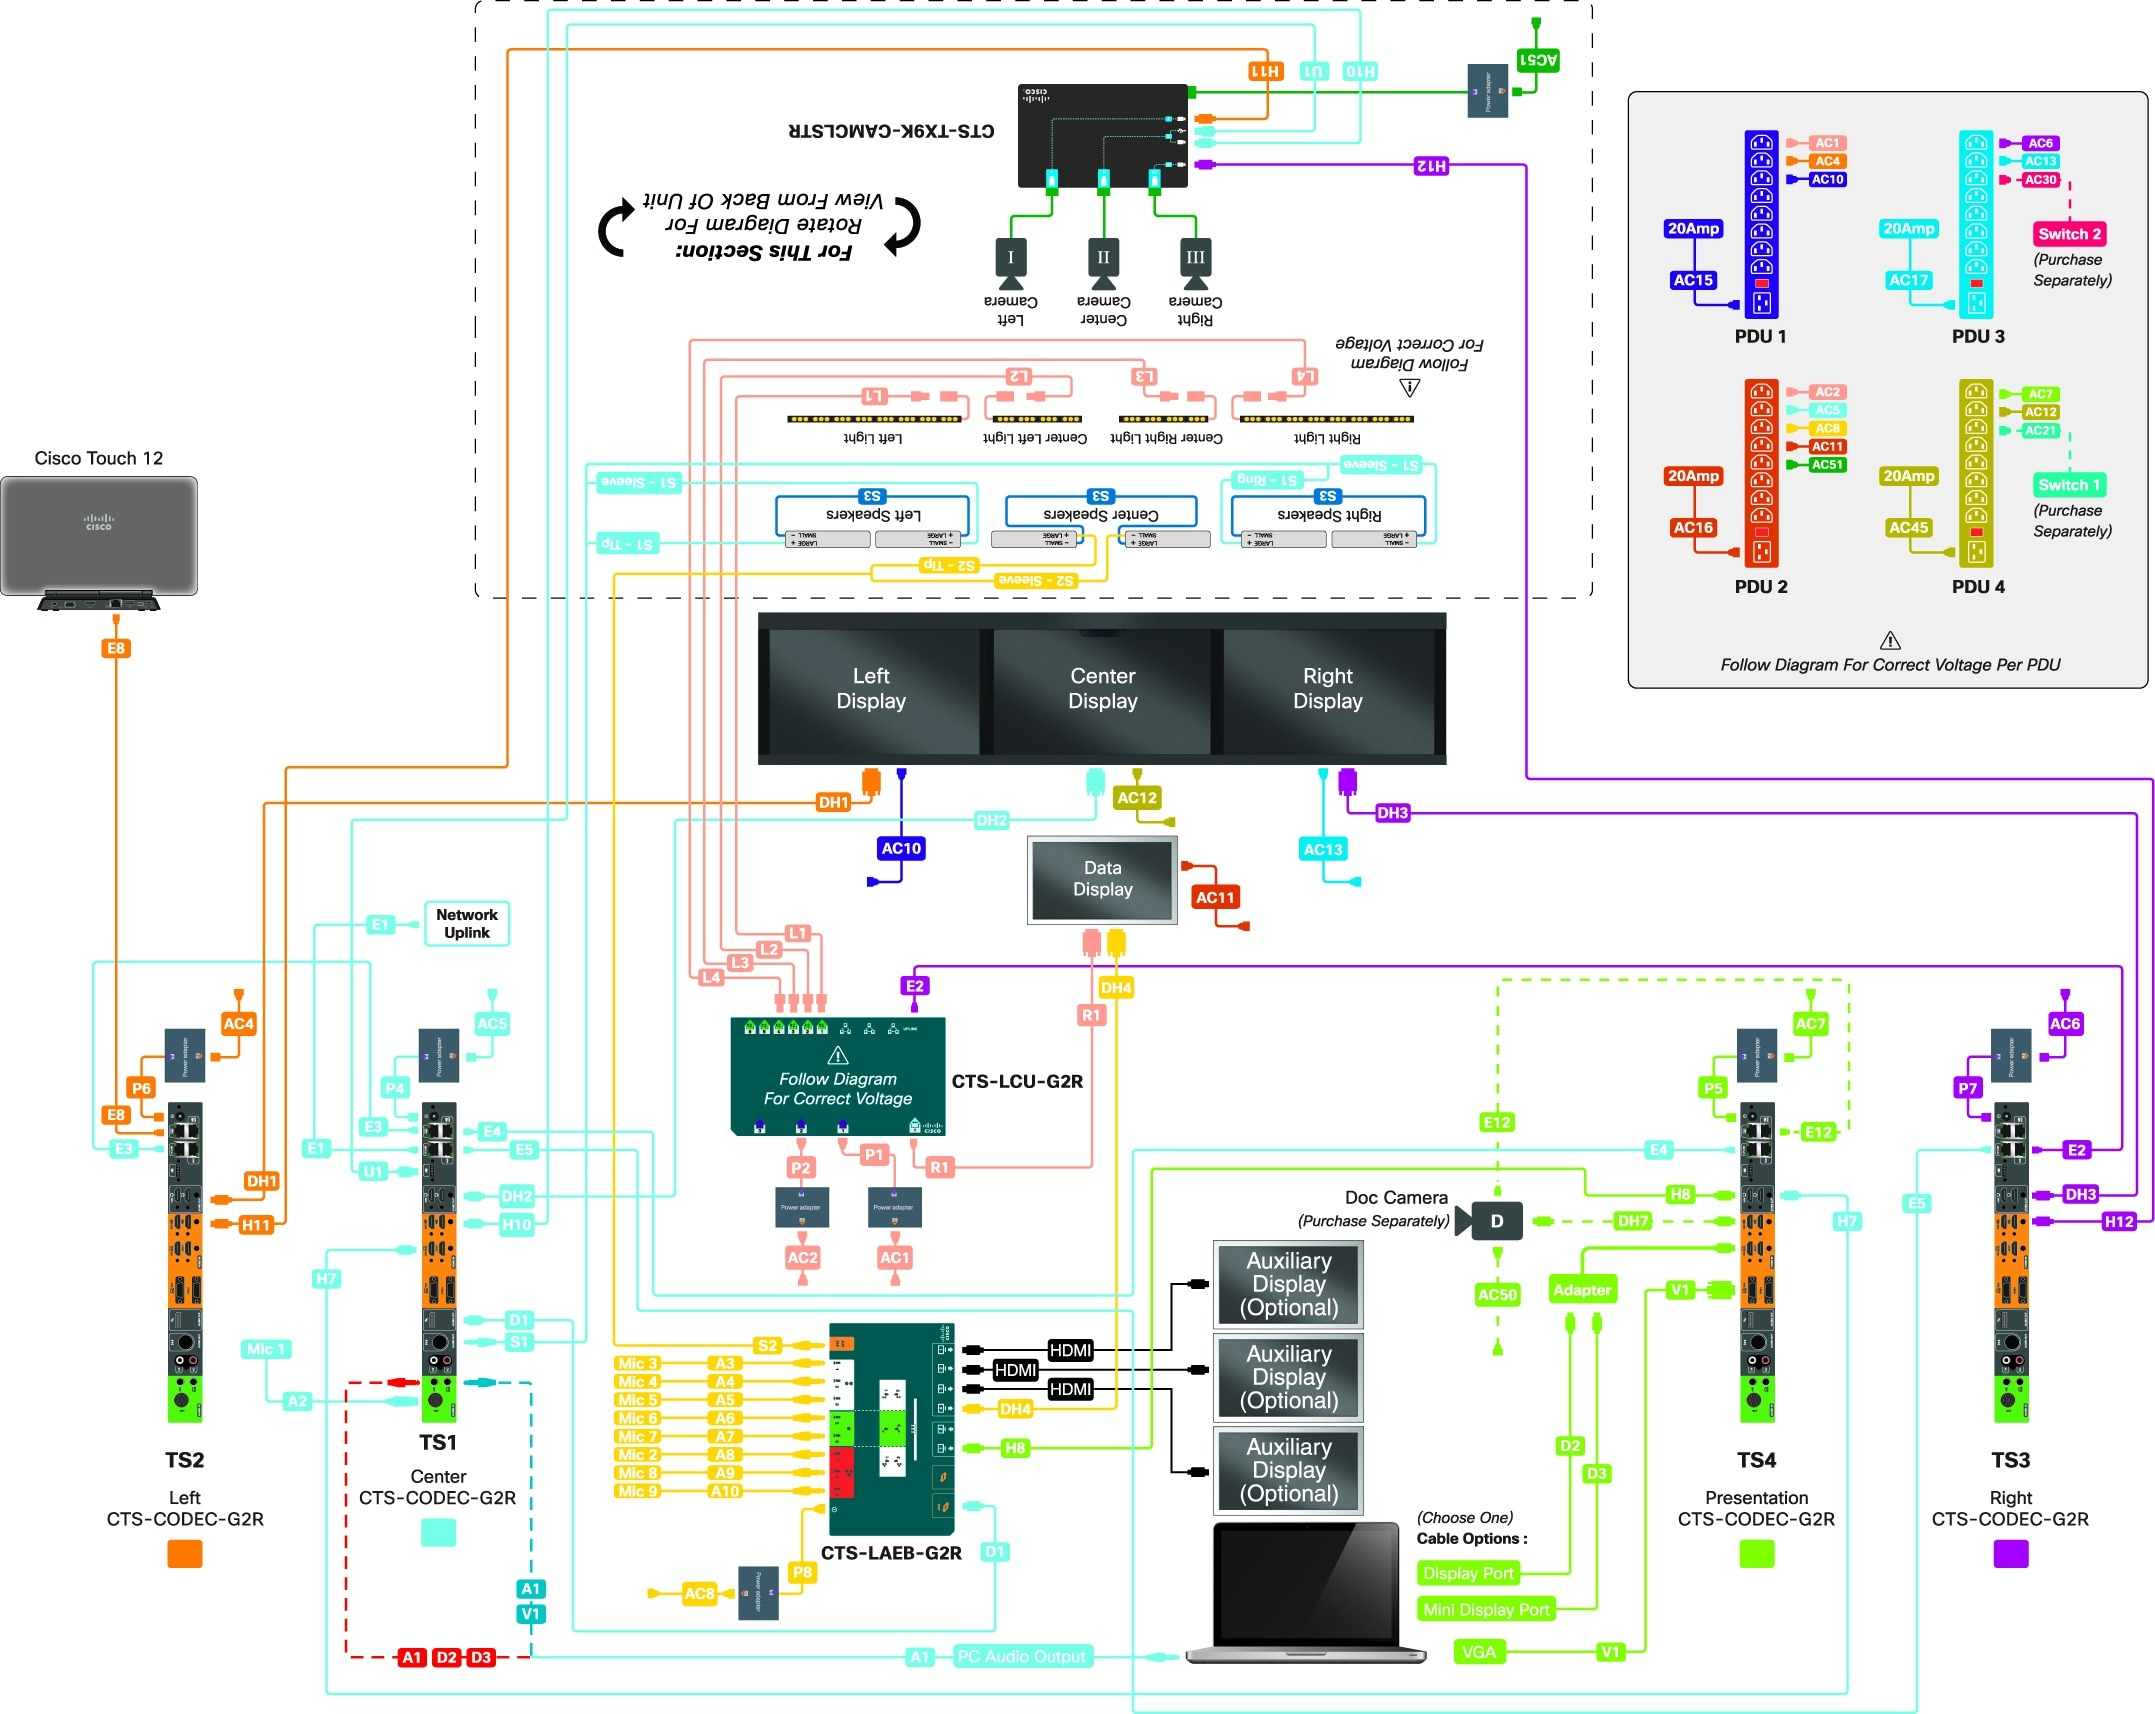 Awesome Hdmi To Dvi Wiring Diagram Basic Electronics Wiring Diagram Wiring Cloud Nuvitbieswglorg